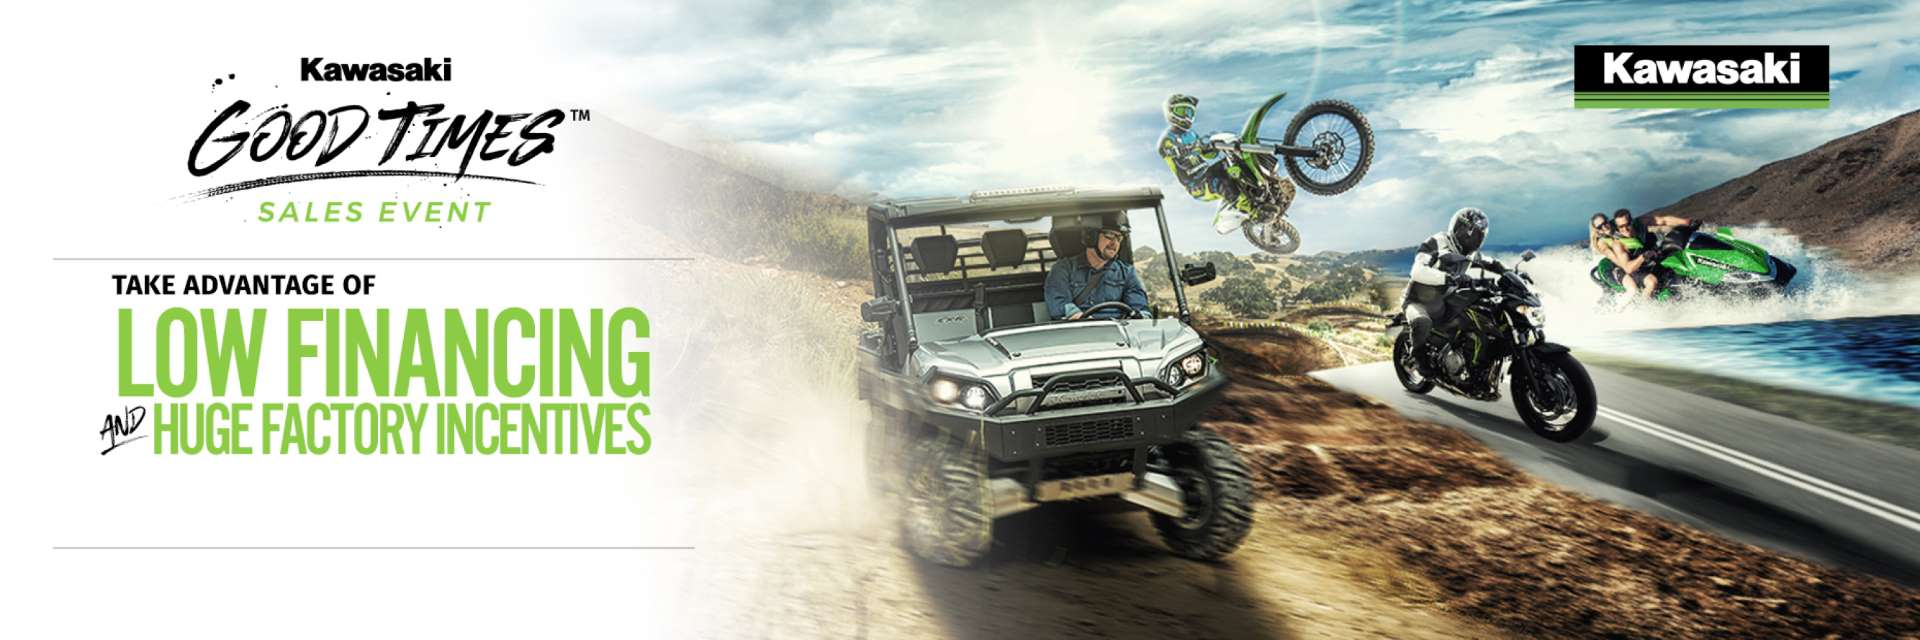 Kawasaki Let the Good Times Roll Sales Event Financing